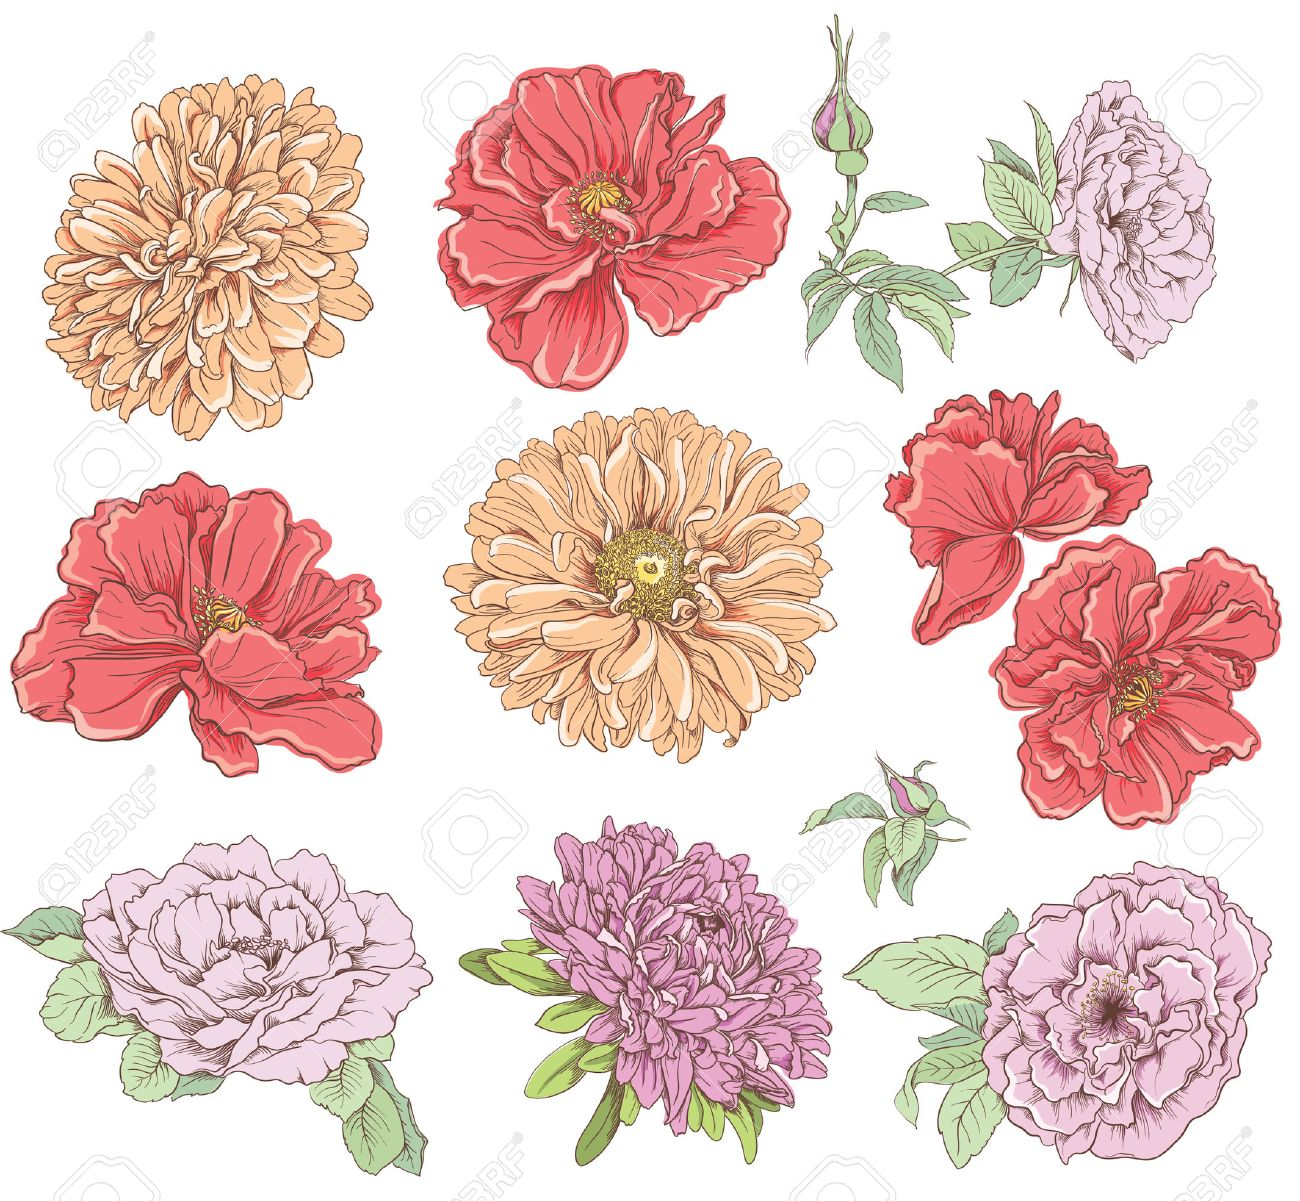 Set of vintage hand drawn flower Vector illustration Big selection of various flowers isolated on white background - 30649487